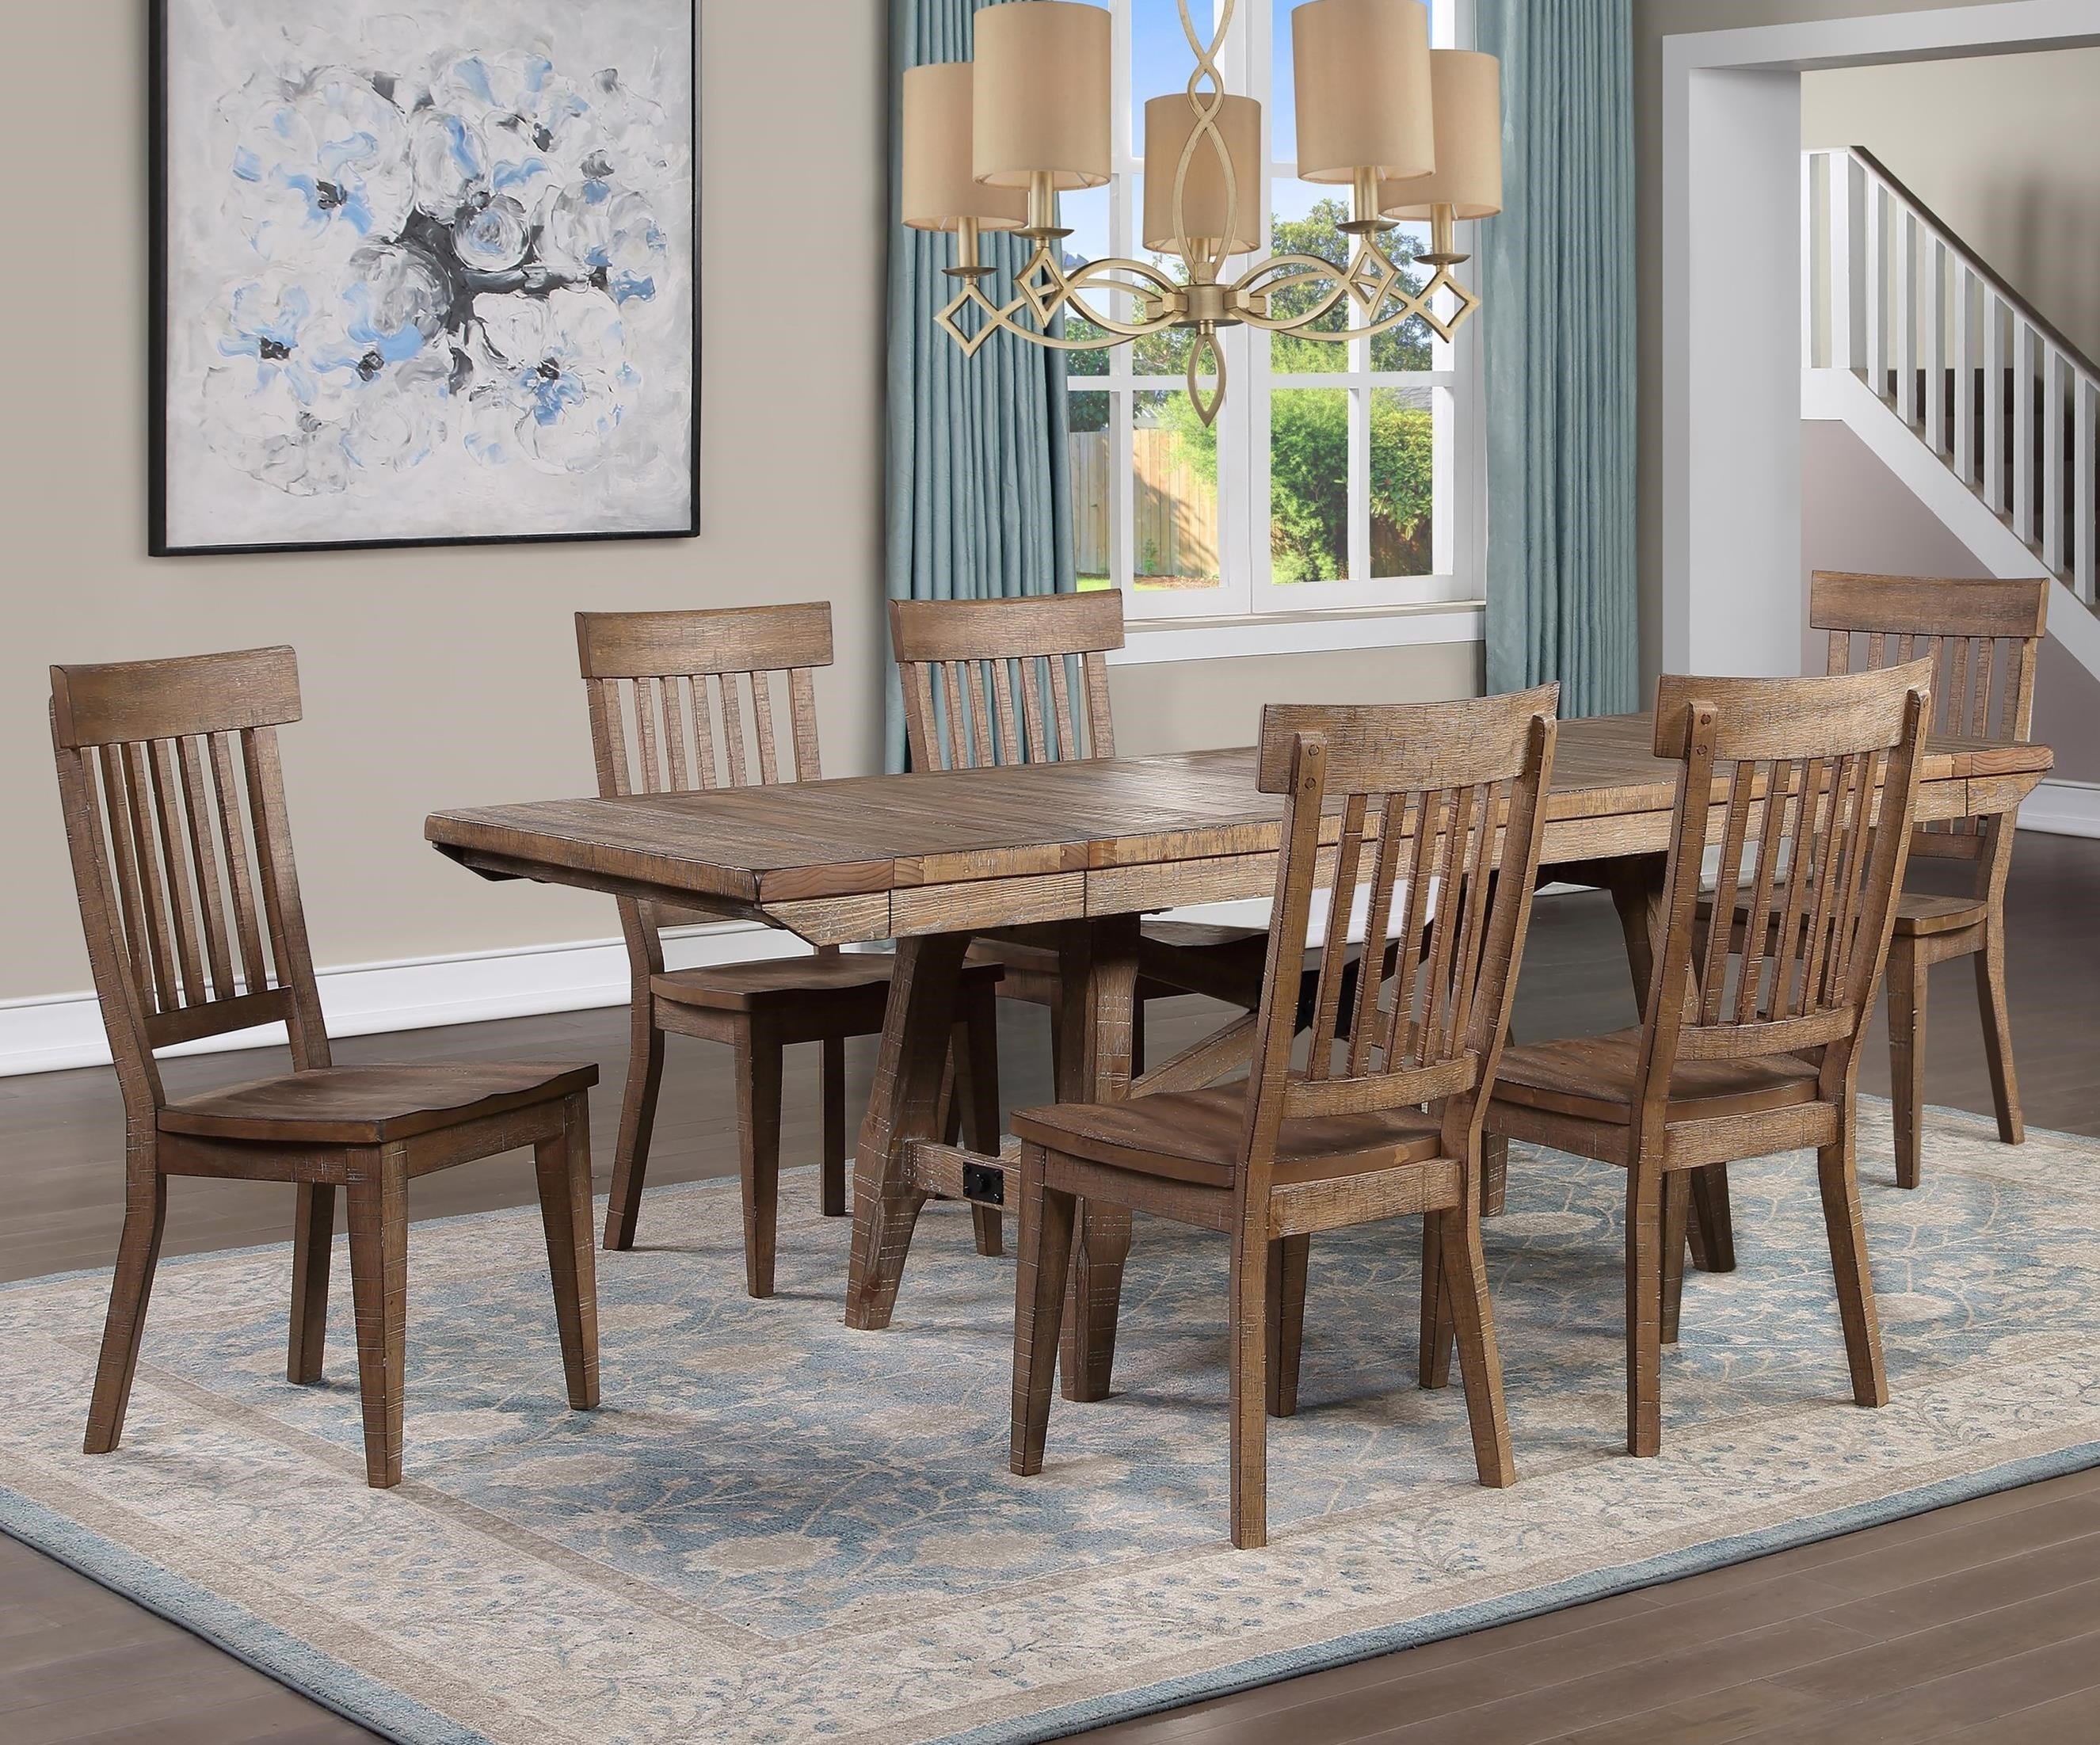 Rustic 7-Piece Dining Table Set with Expandable Leaves